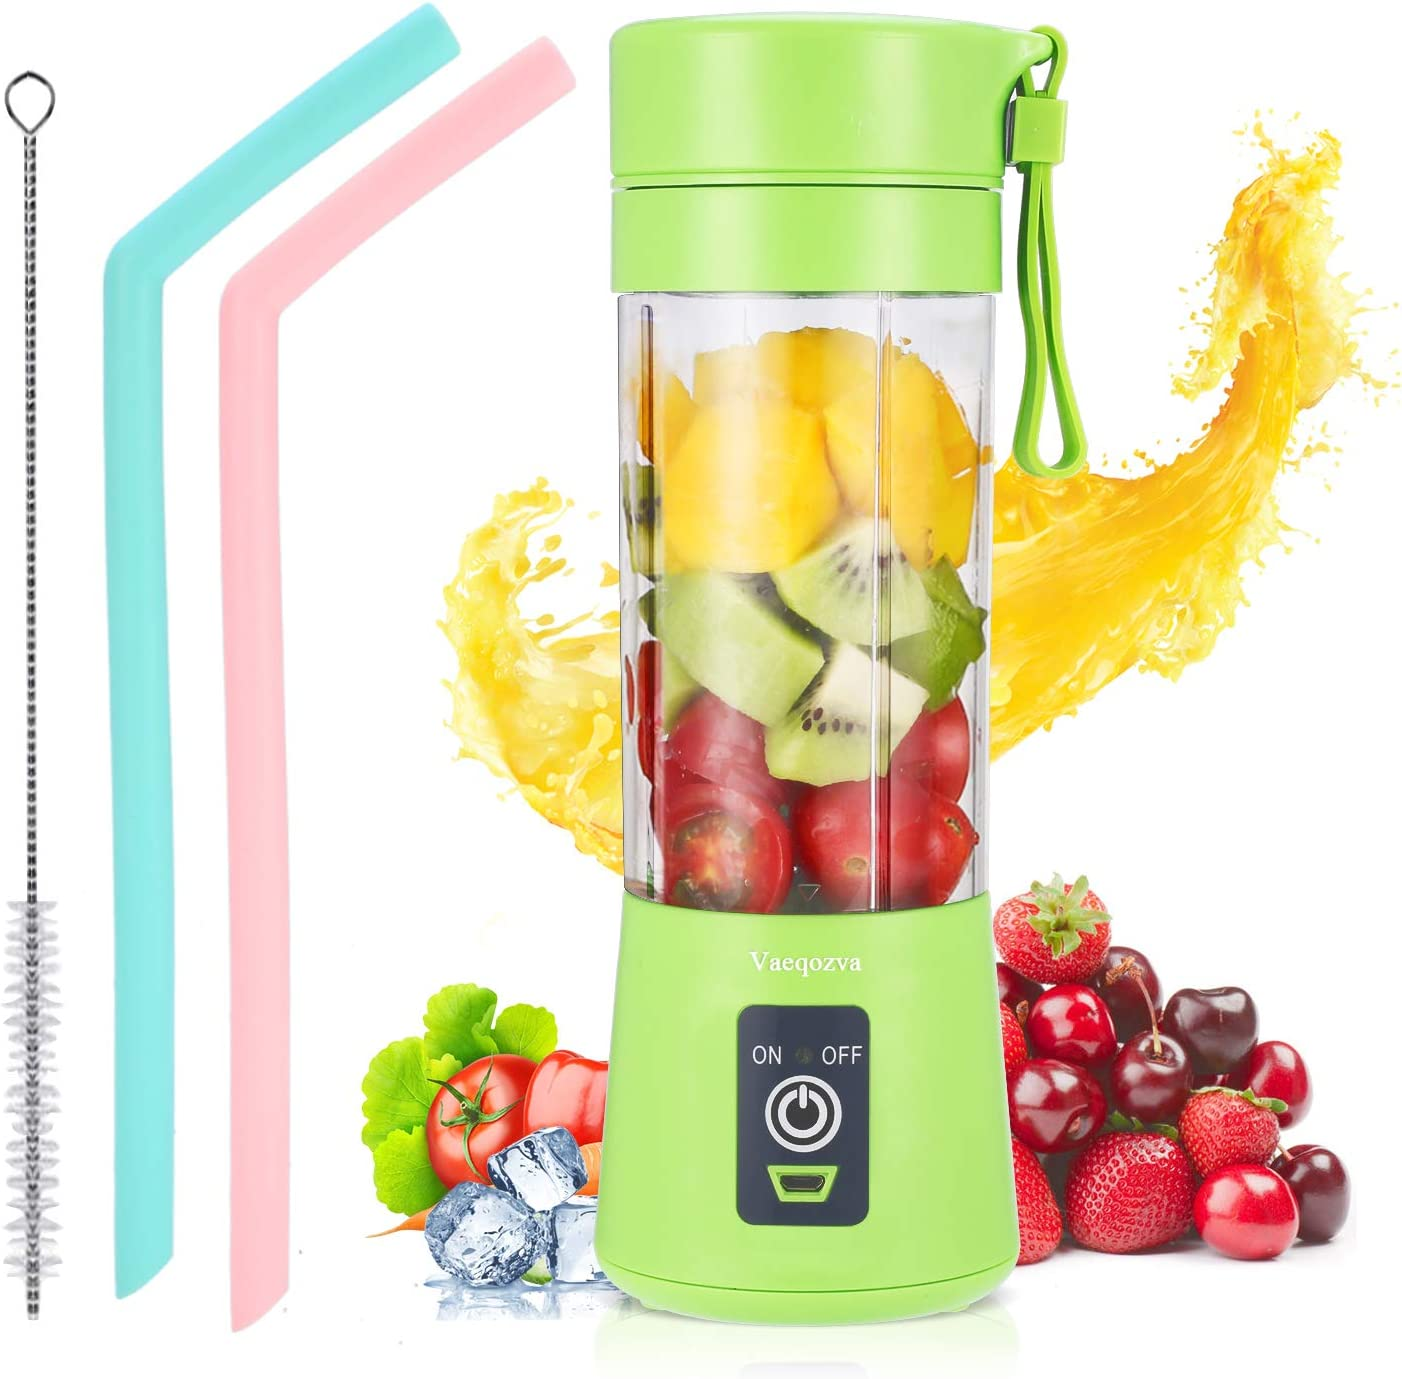 Portable Blender Personal USB Rechargeable Juicer Cup Smoothies and Shakes, Handheld Fruit Mixer Machine with Straws (Green)